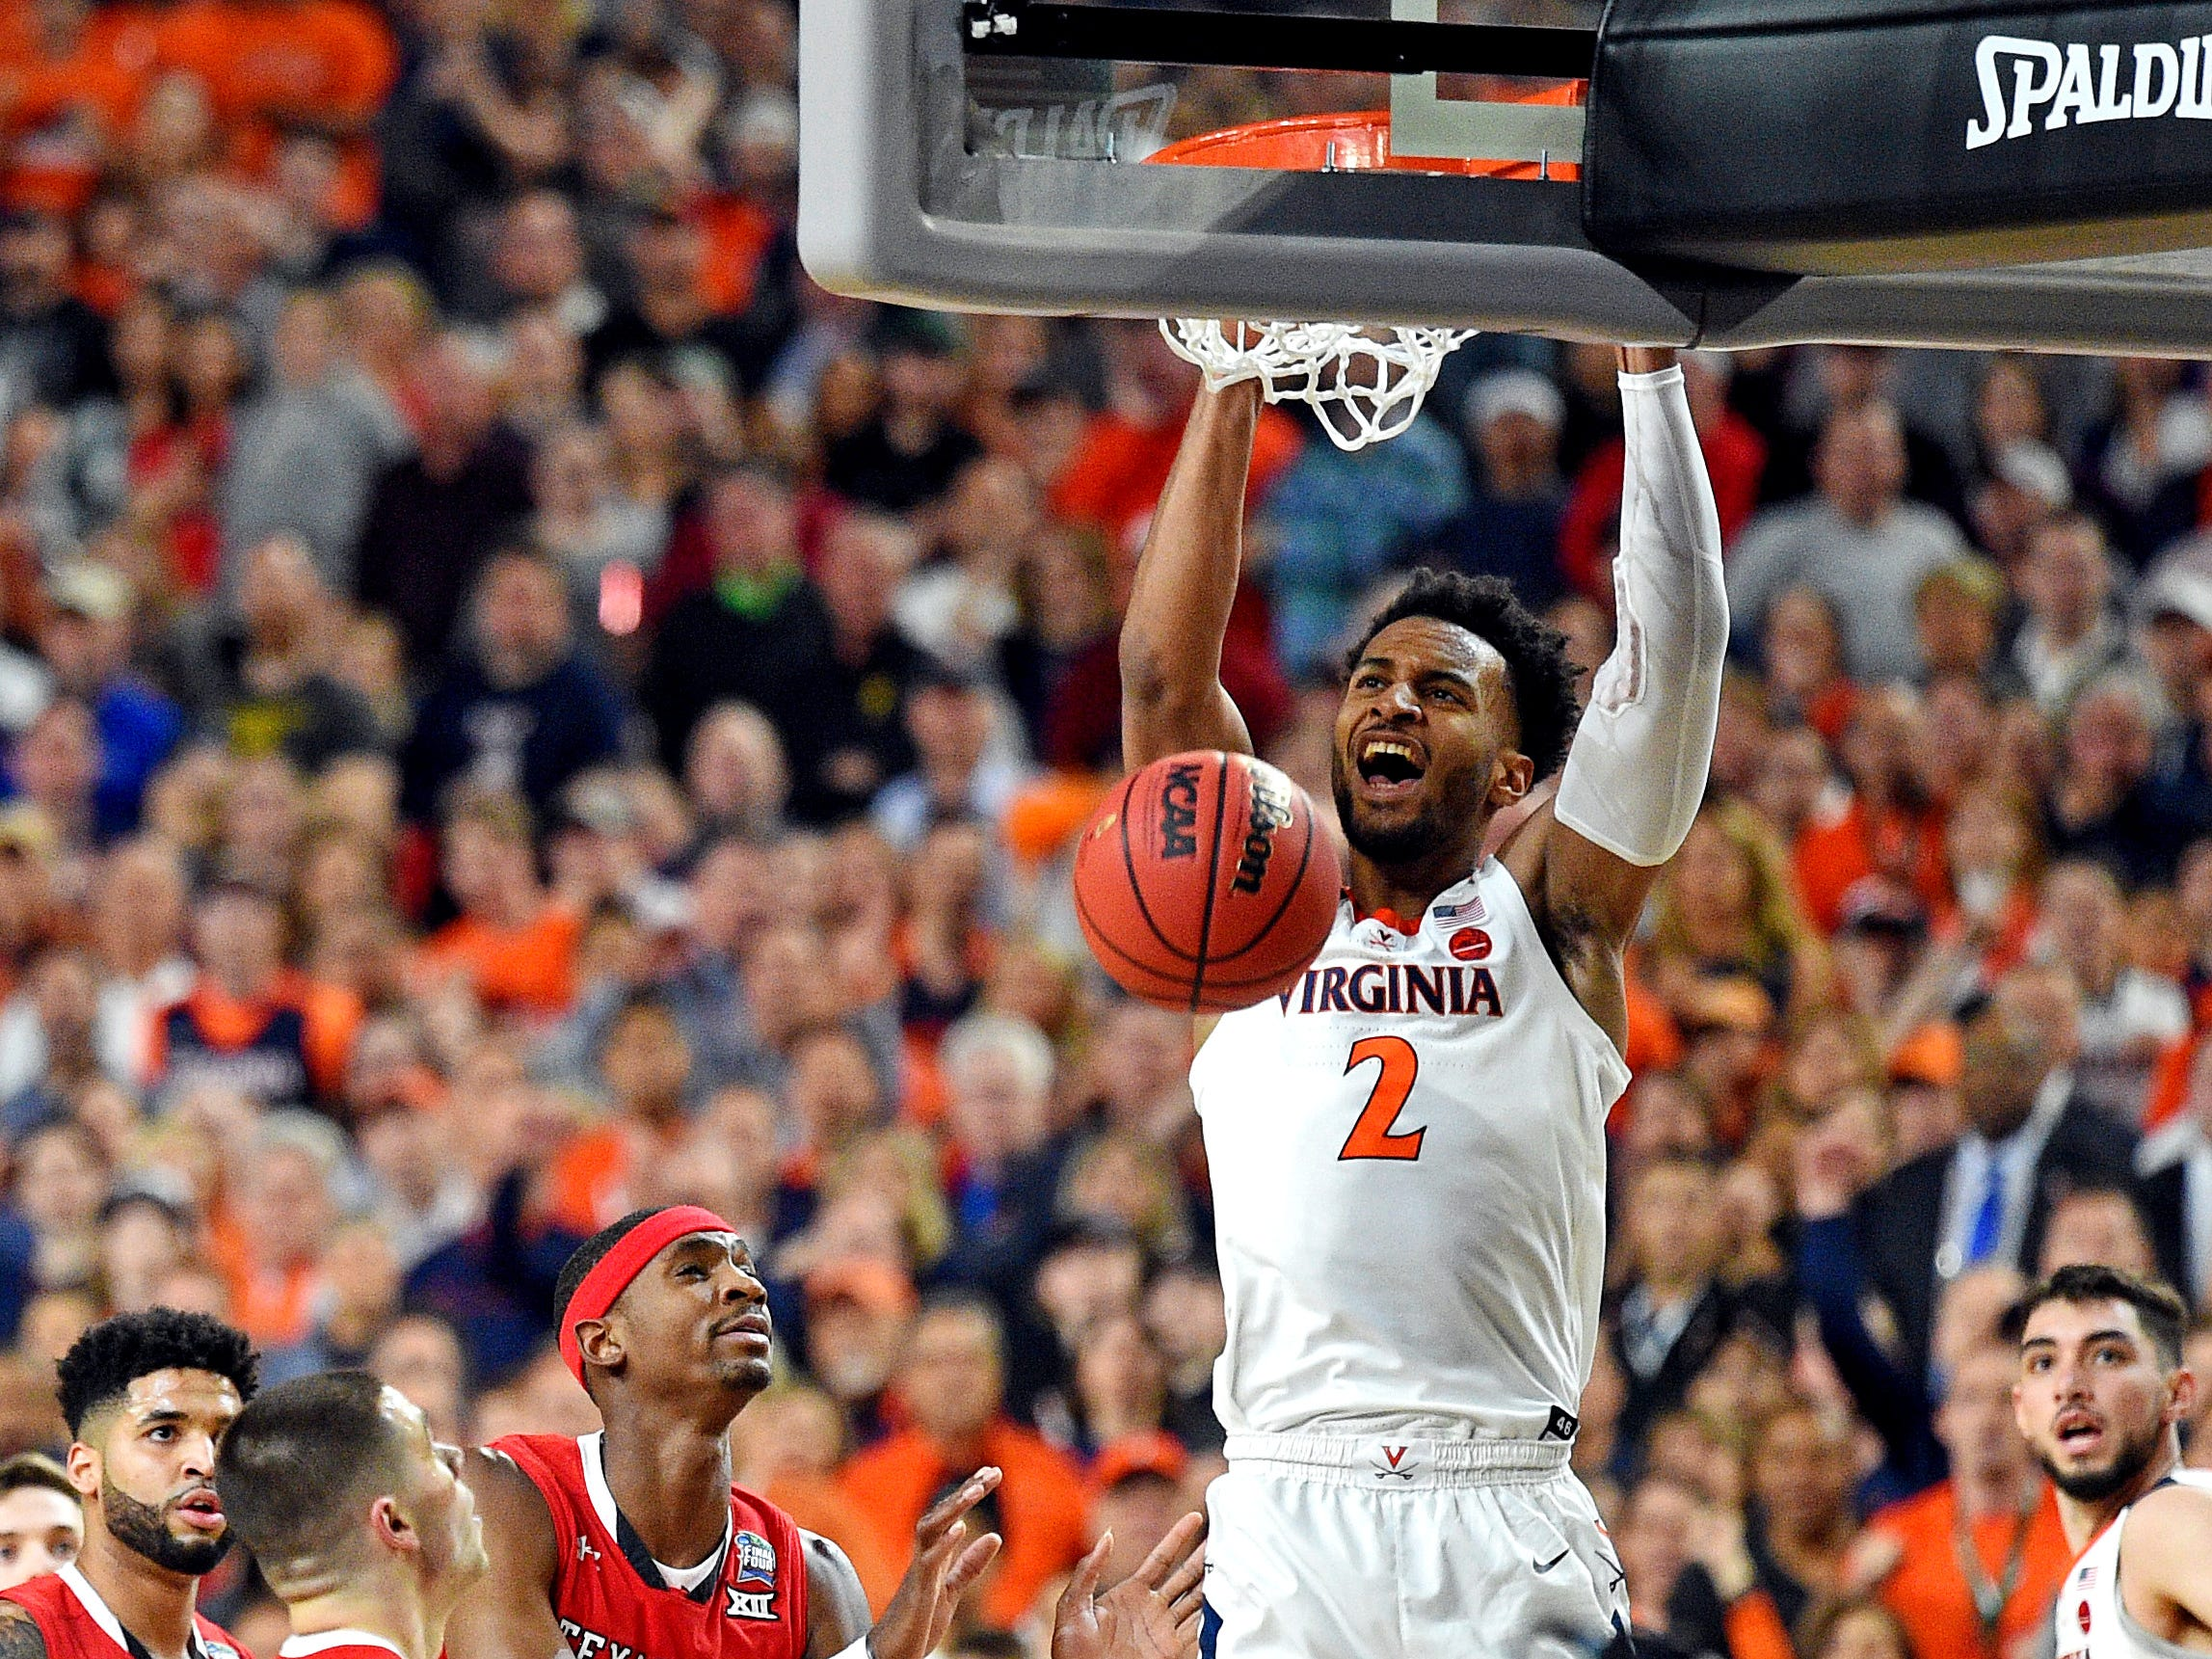 Apr 8, 2019; Minneapolis, MN, USA; Virginia Cavaliers guard Braxton Key (2) dunks the ball against Texas Tech Red Raiders guard Matt Mooney (13) during the first half in the championship game of the 2019 men's Final Four at US Bank Stadium. Mandatory Credit: Bob Donnan-USA TODAY Sports